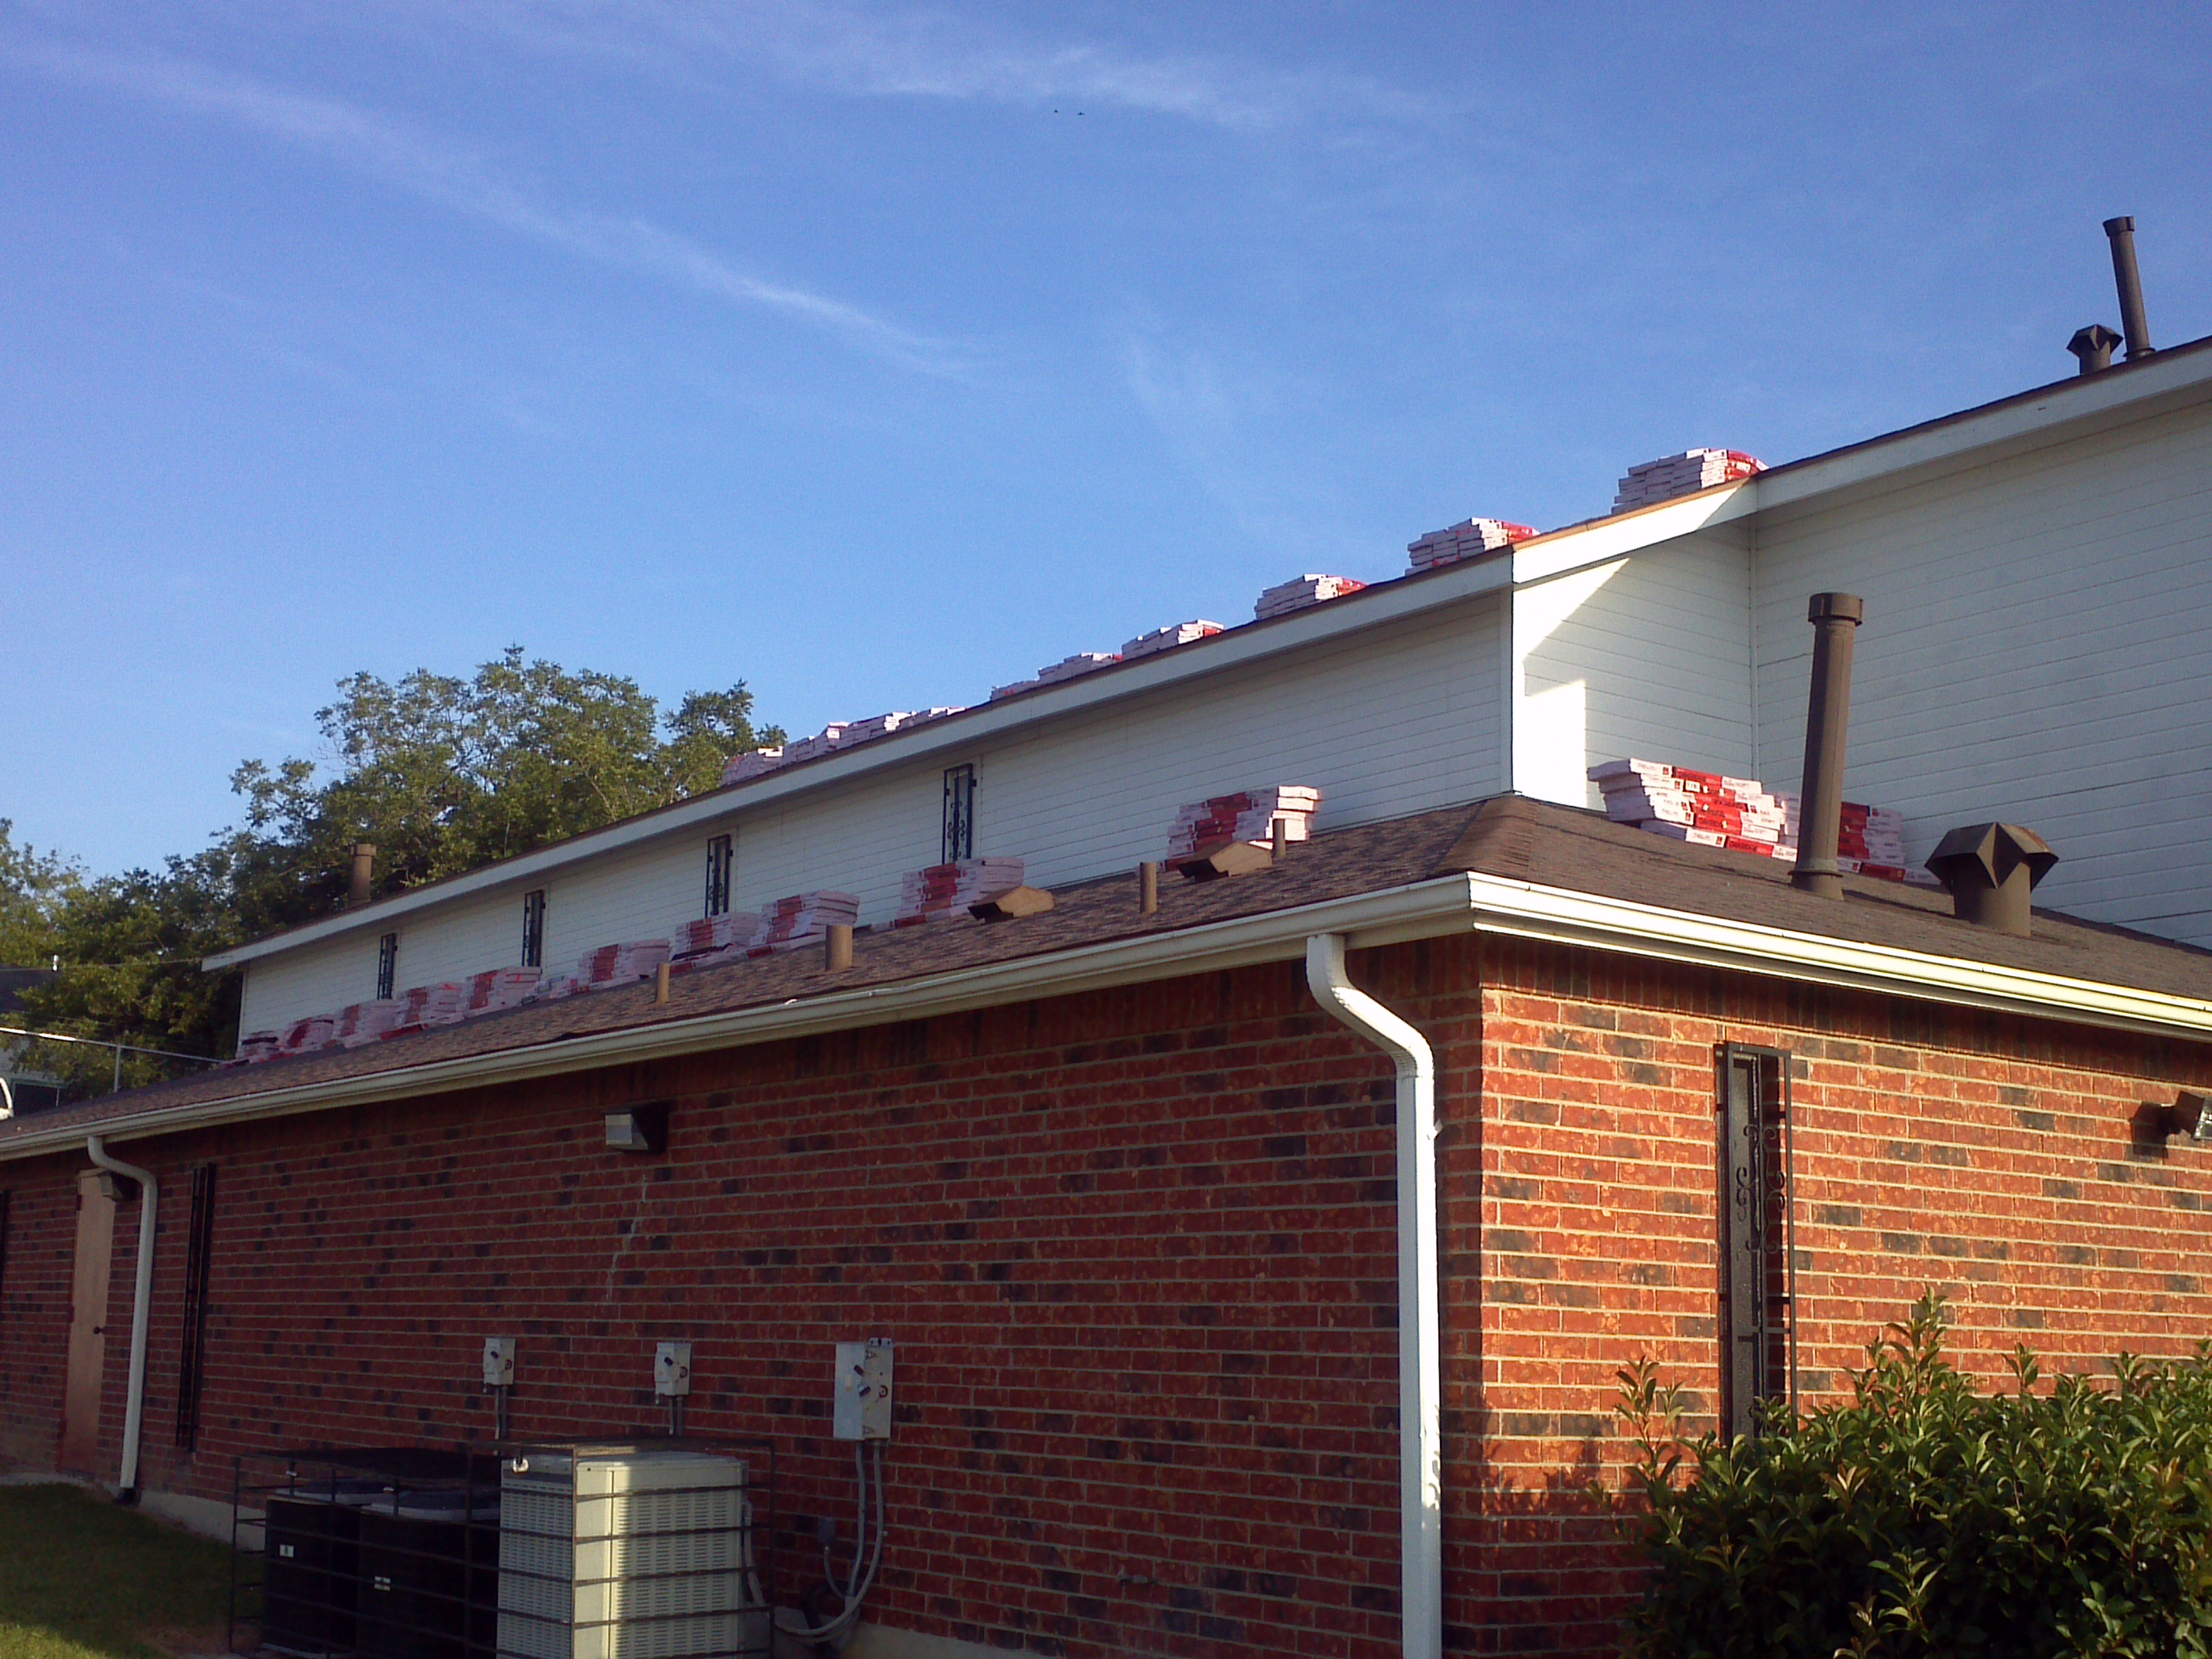 Alexander S Roofing Coupons Near Me In 8coupons